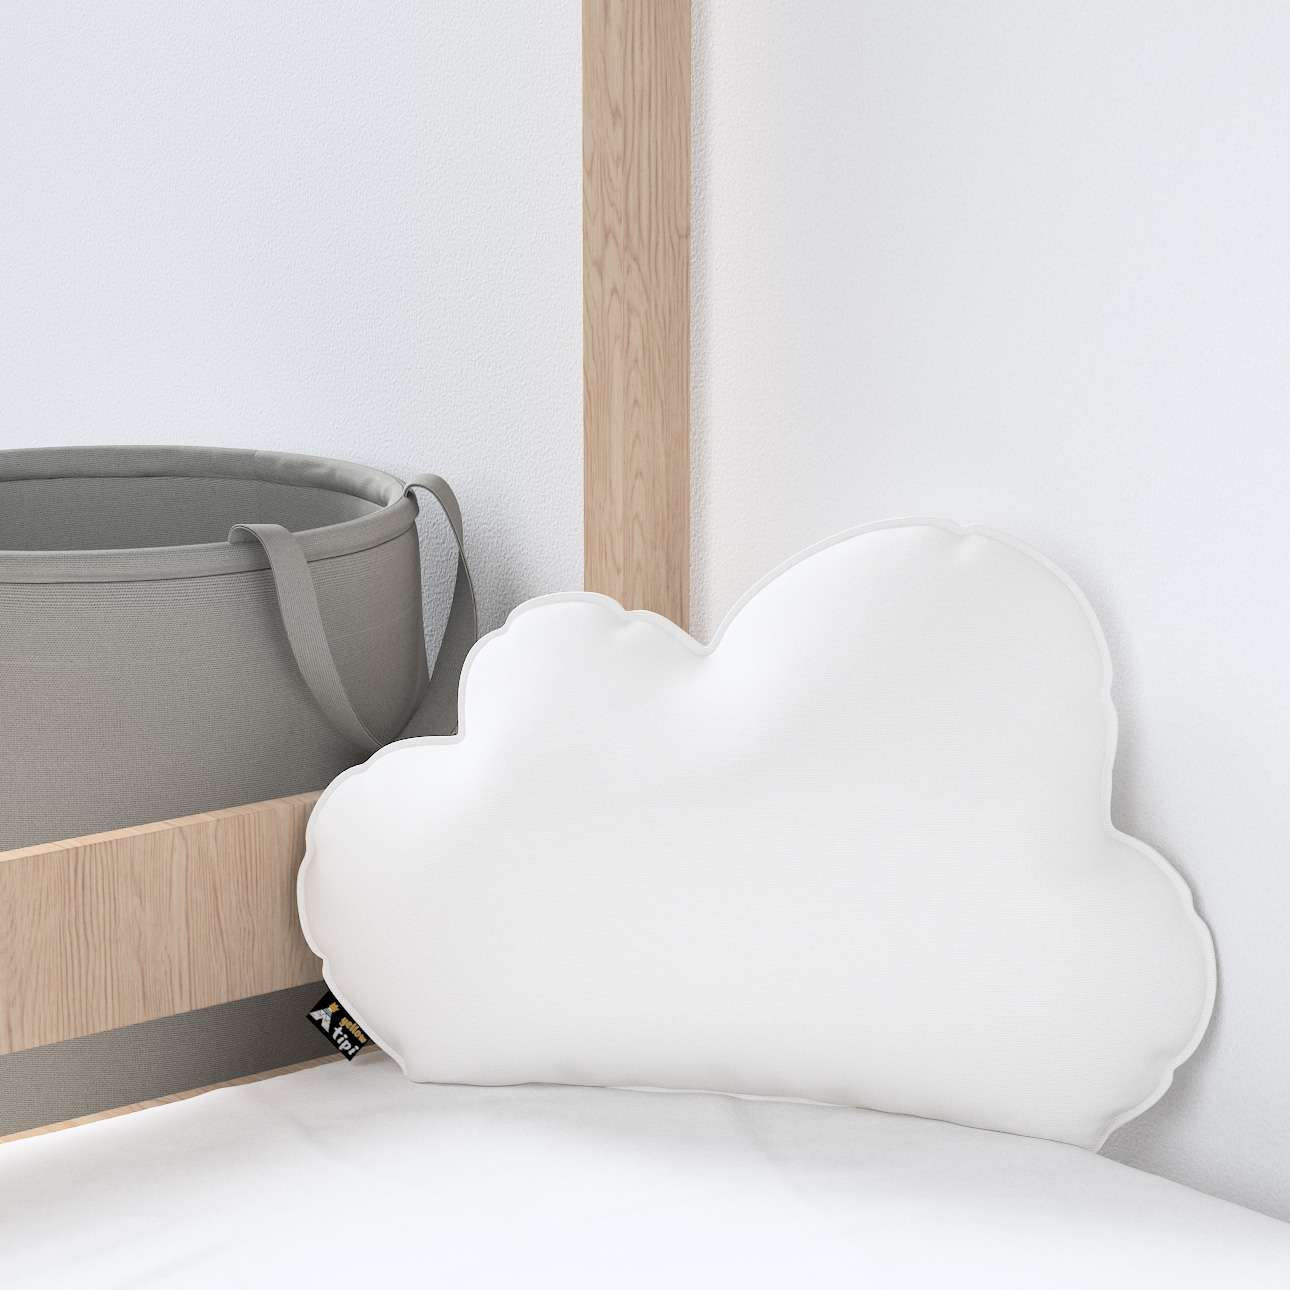 Soft Cloud pillow in collection Happiness, fabric: 133-02